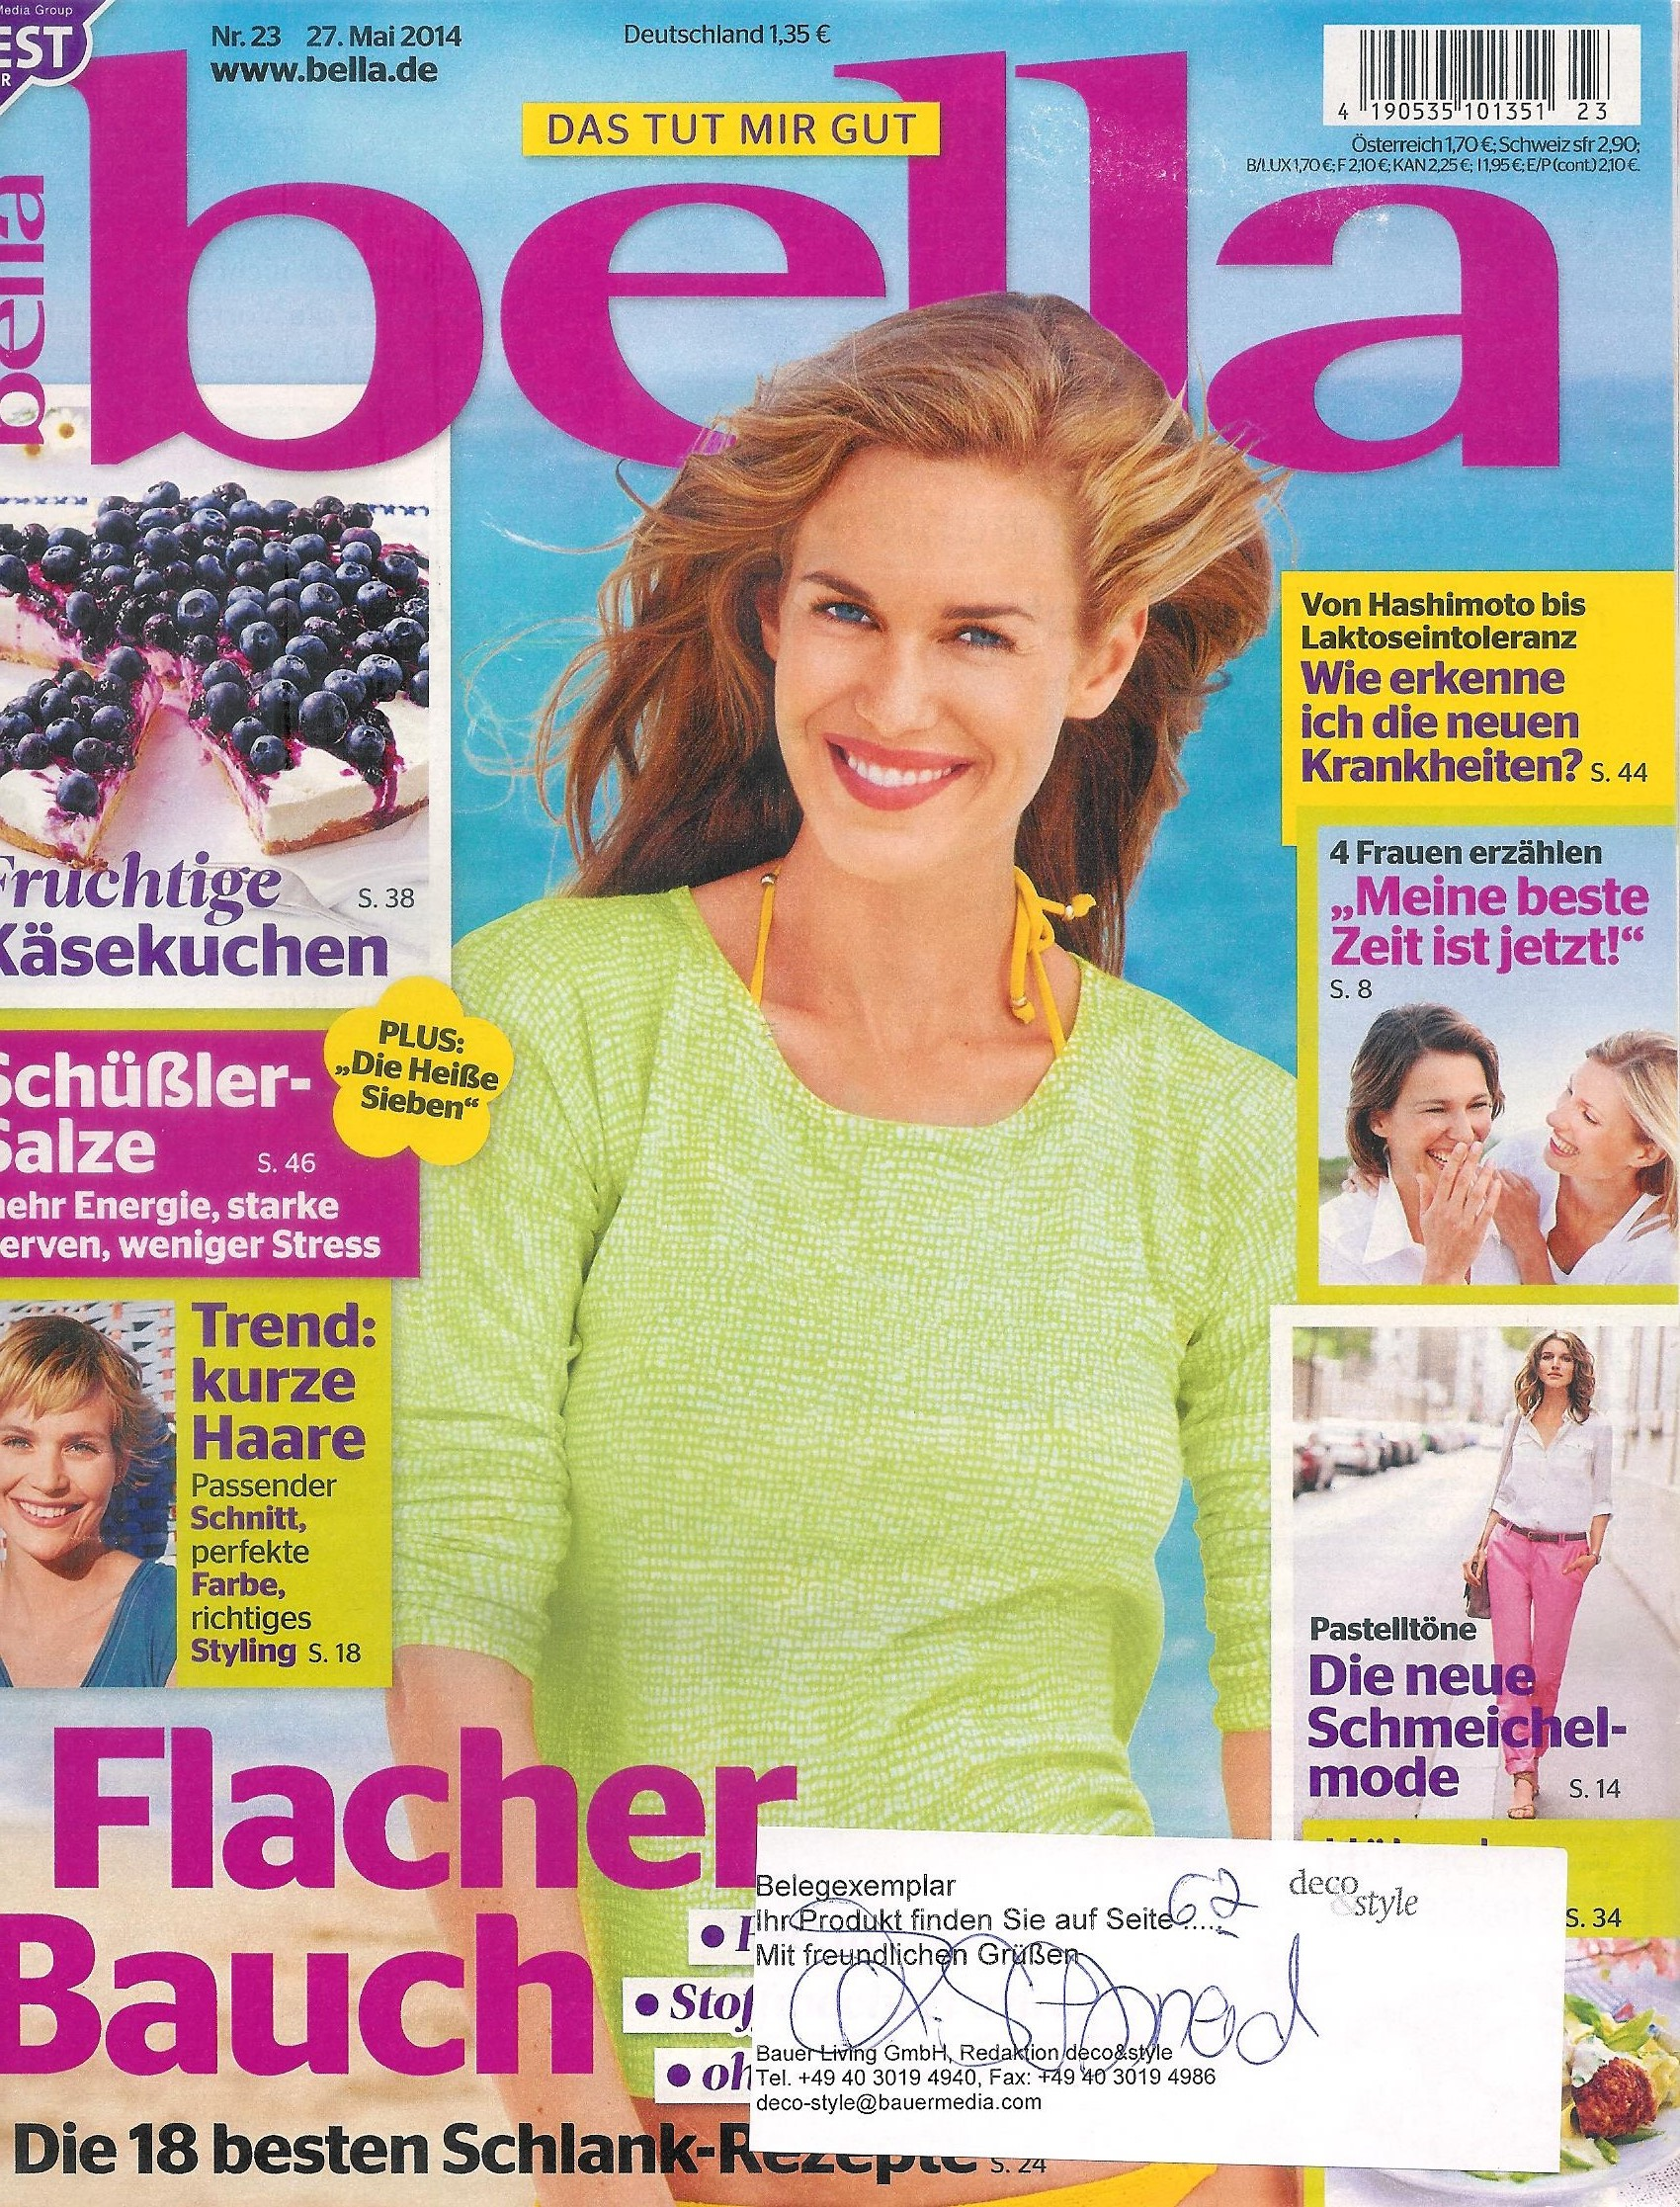 Geschirr Tovaglia in der Bella, Copyright bella Magazin 2014